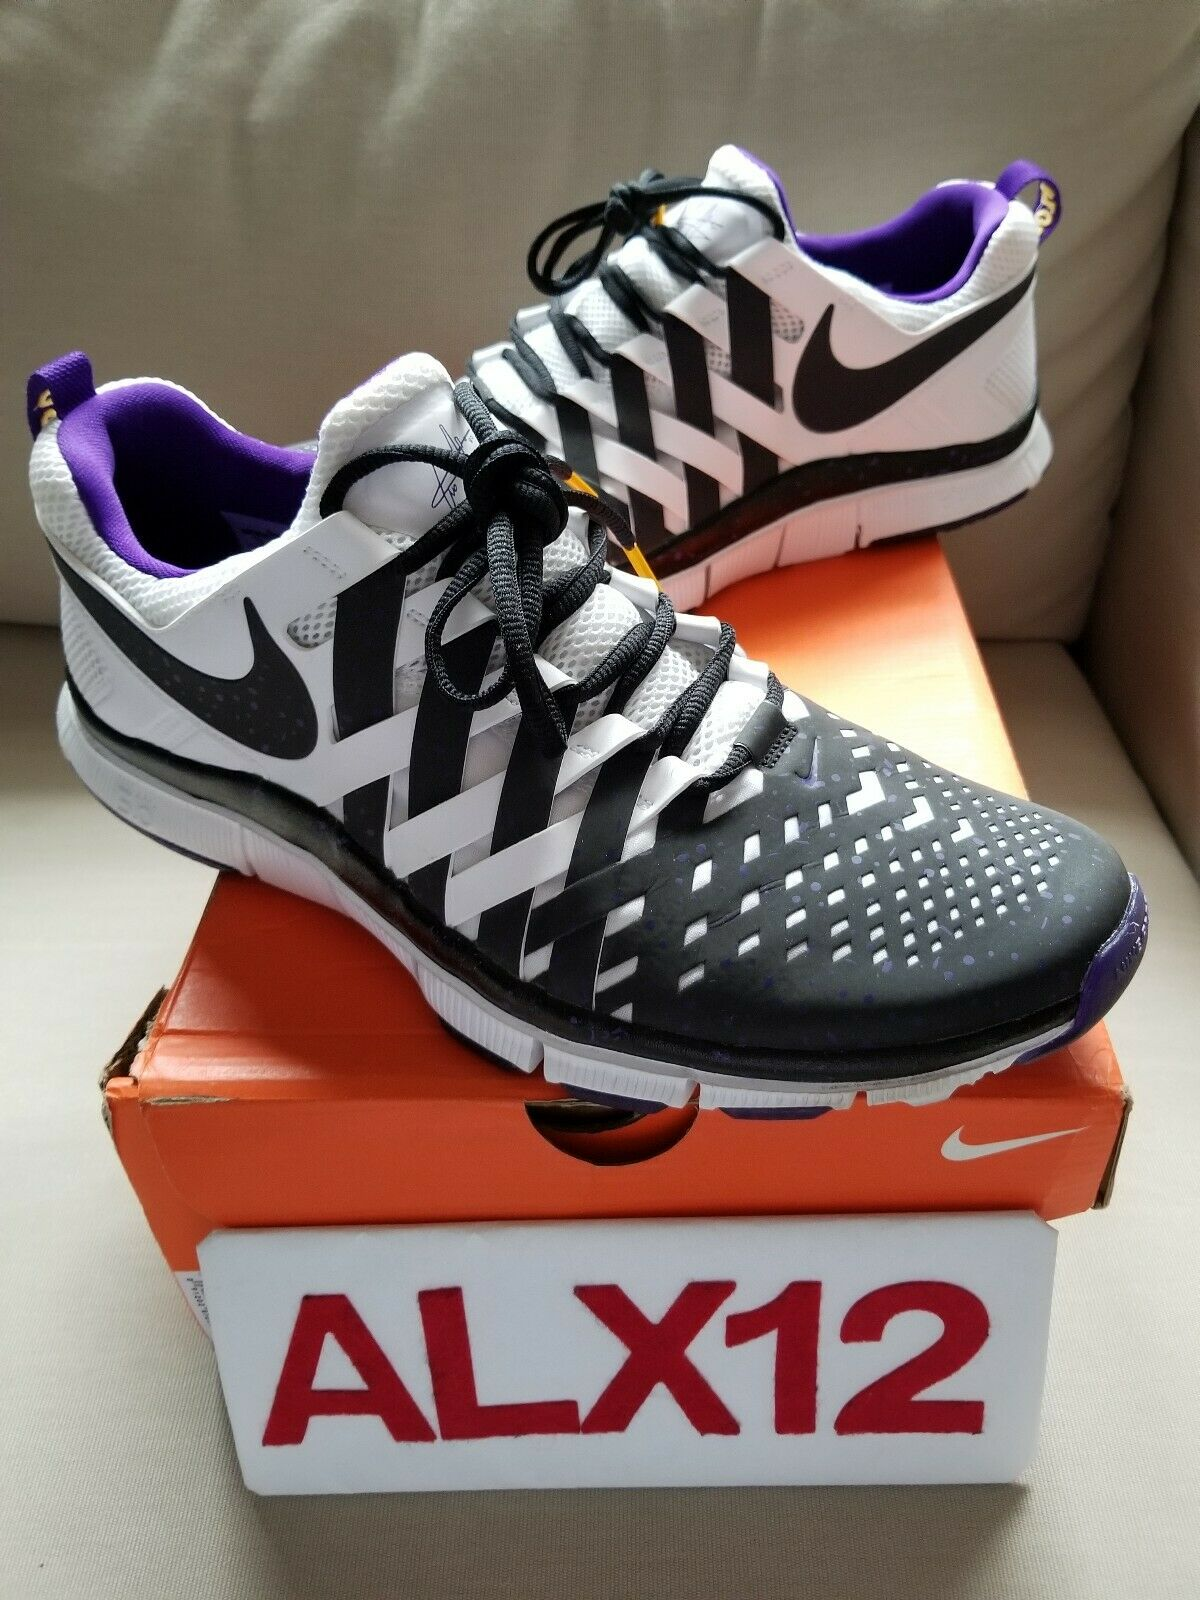 new styles 4dffc 6e164 Nike Free Trainer 5.0 Cris Carter. Worn Lightly. Size 12. VNDS